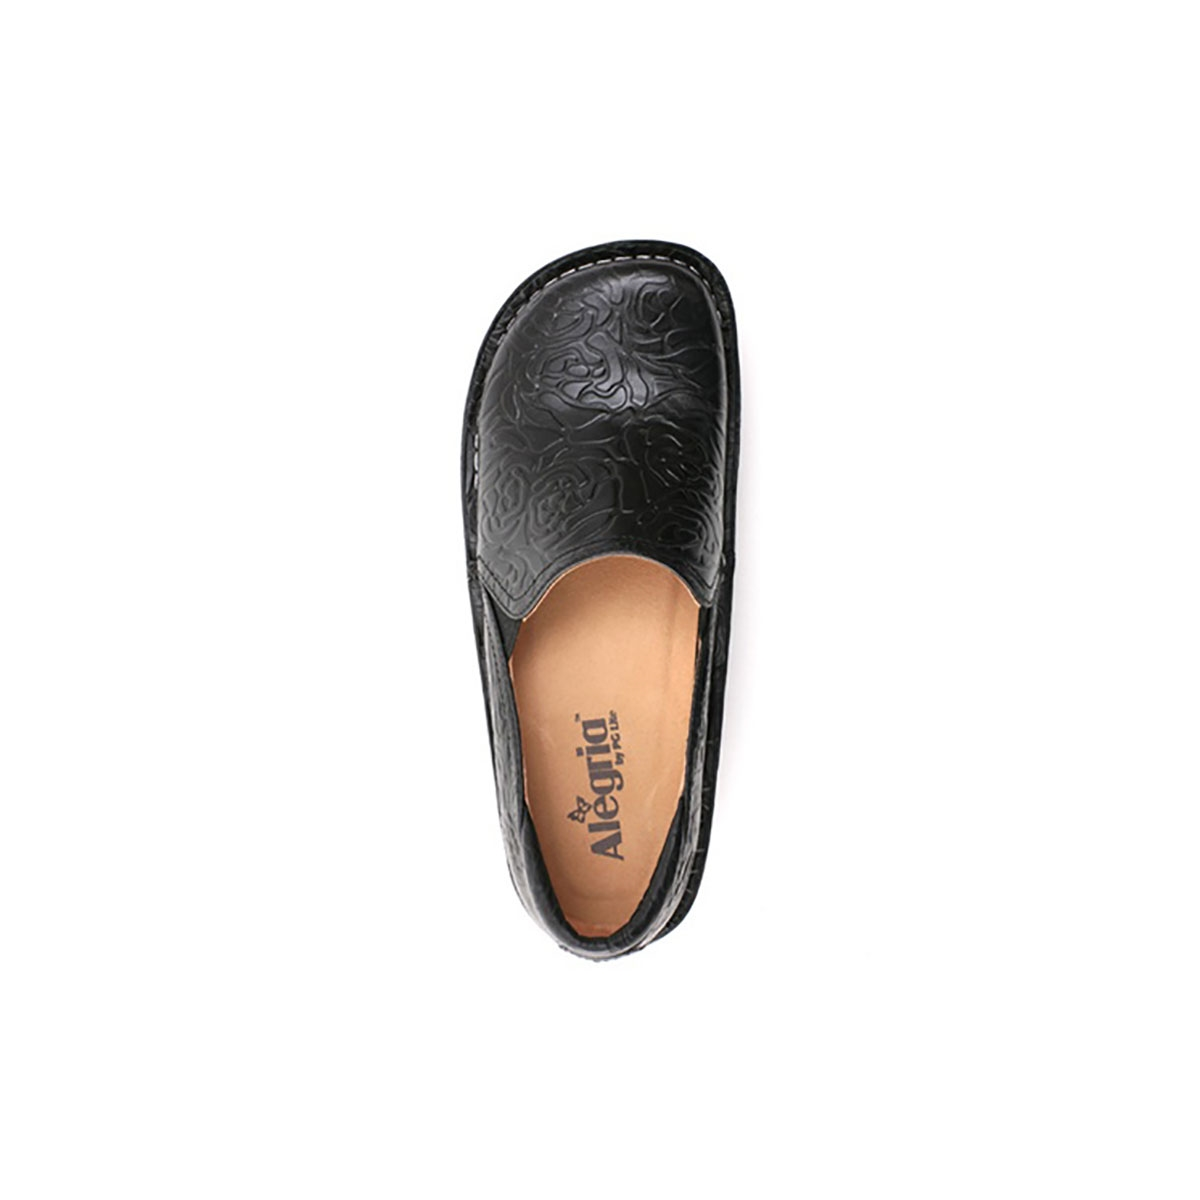 Nurse Alegria Debra Black Embossed Rose Nursing Shoes